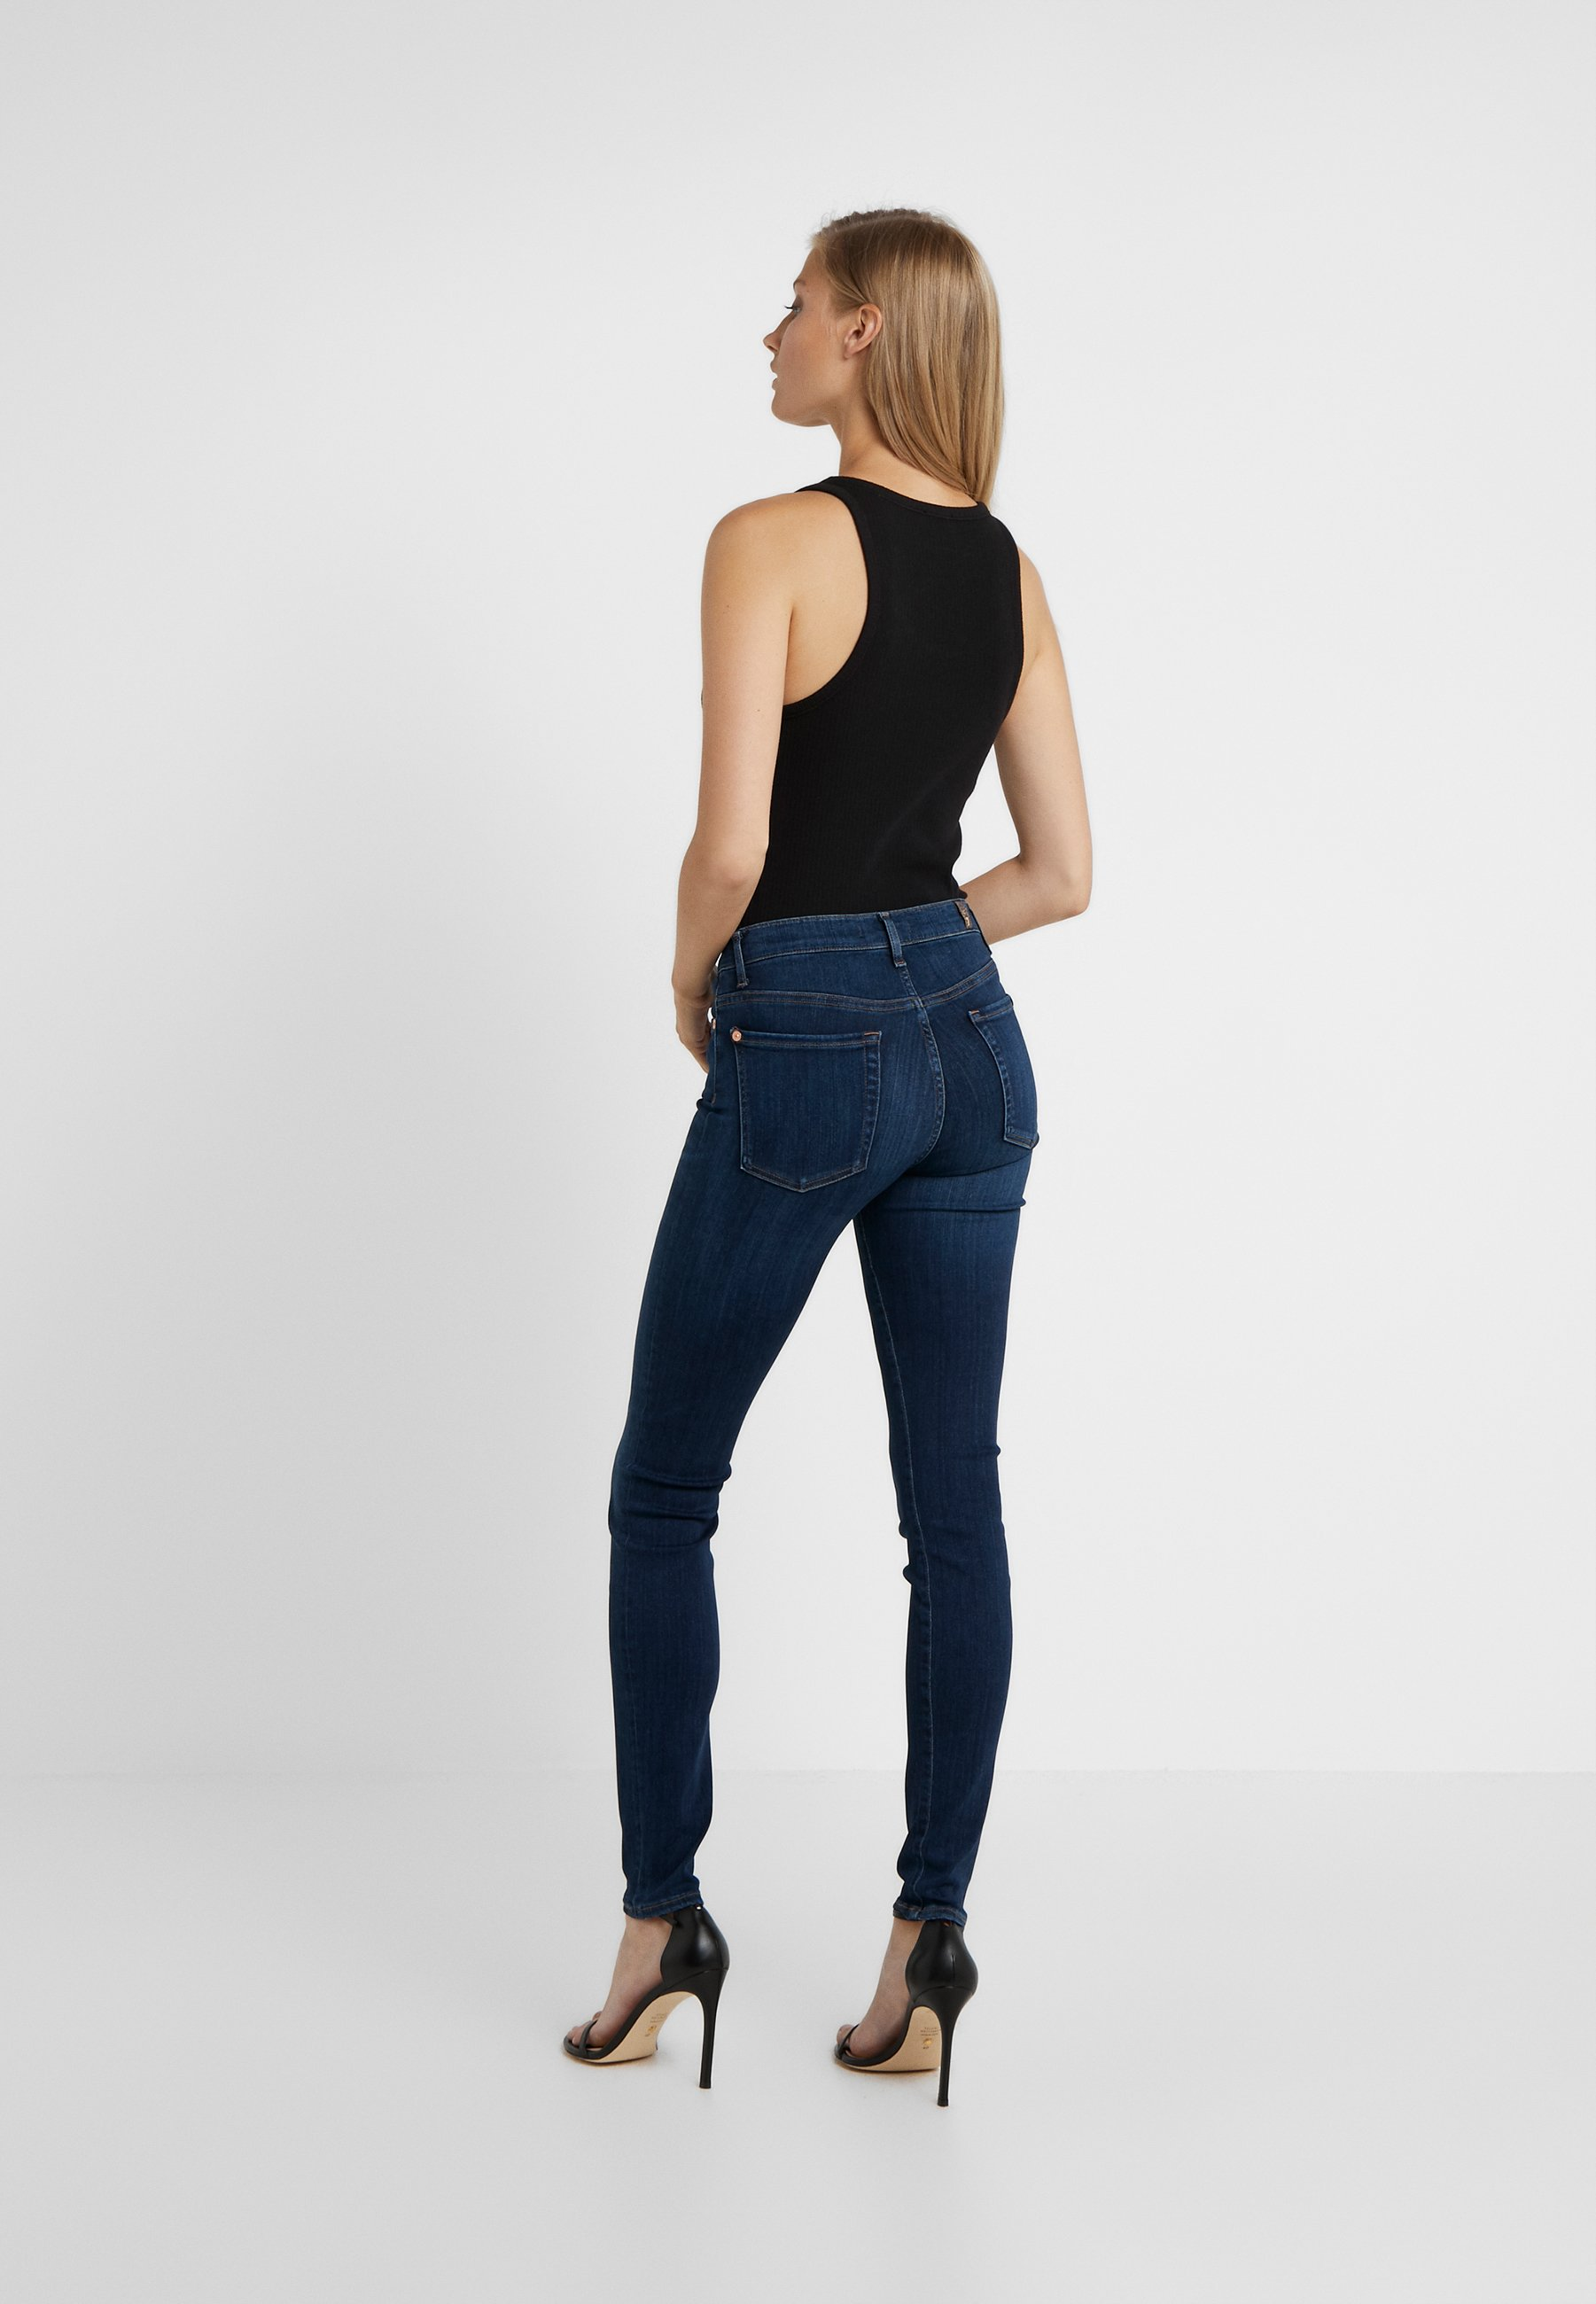 For 7 StarlightJeans Skinny Luxe Mankind Illusion Dark Blue All LjMUVpGzSq